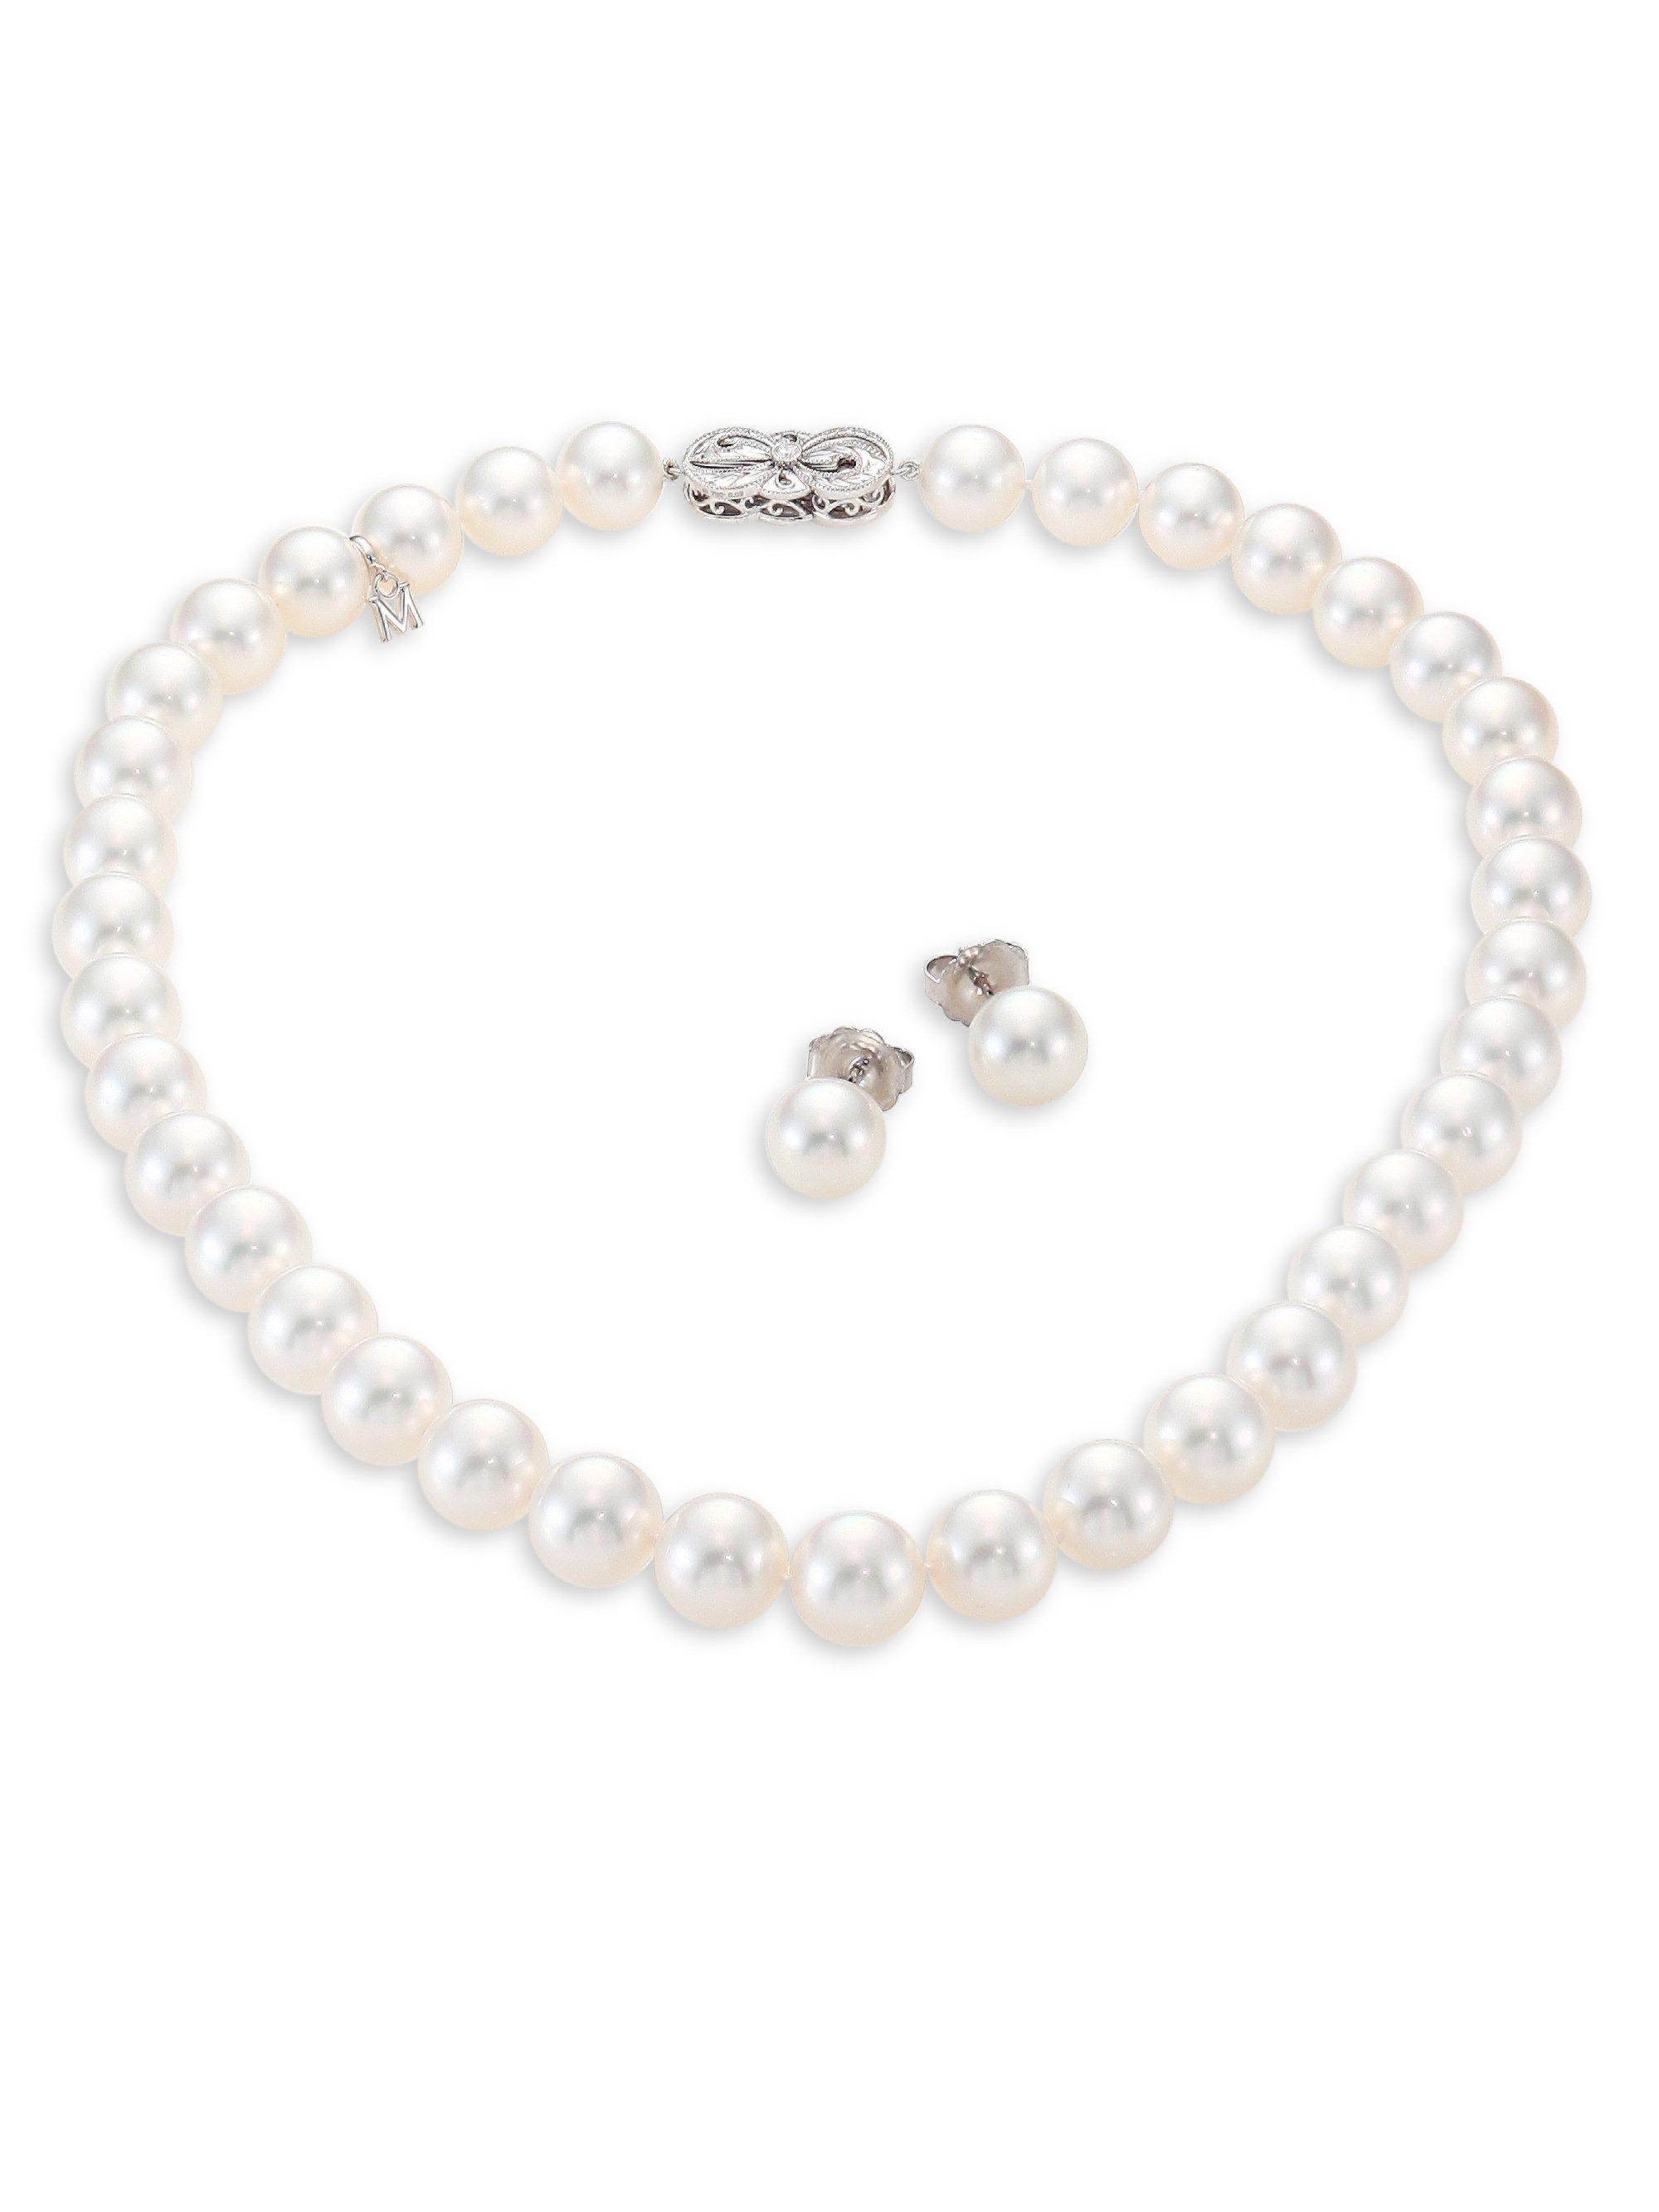 necklace pearls mikimoto day subsampling scale false wedding images upscale crop pearl